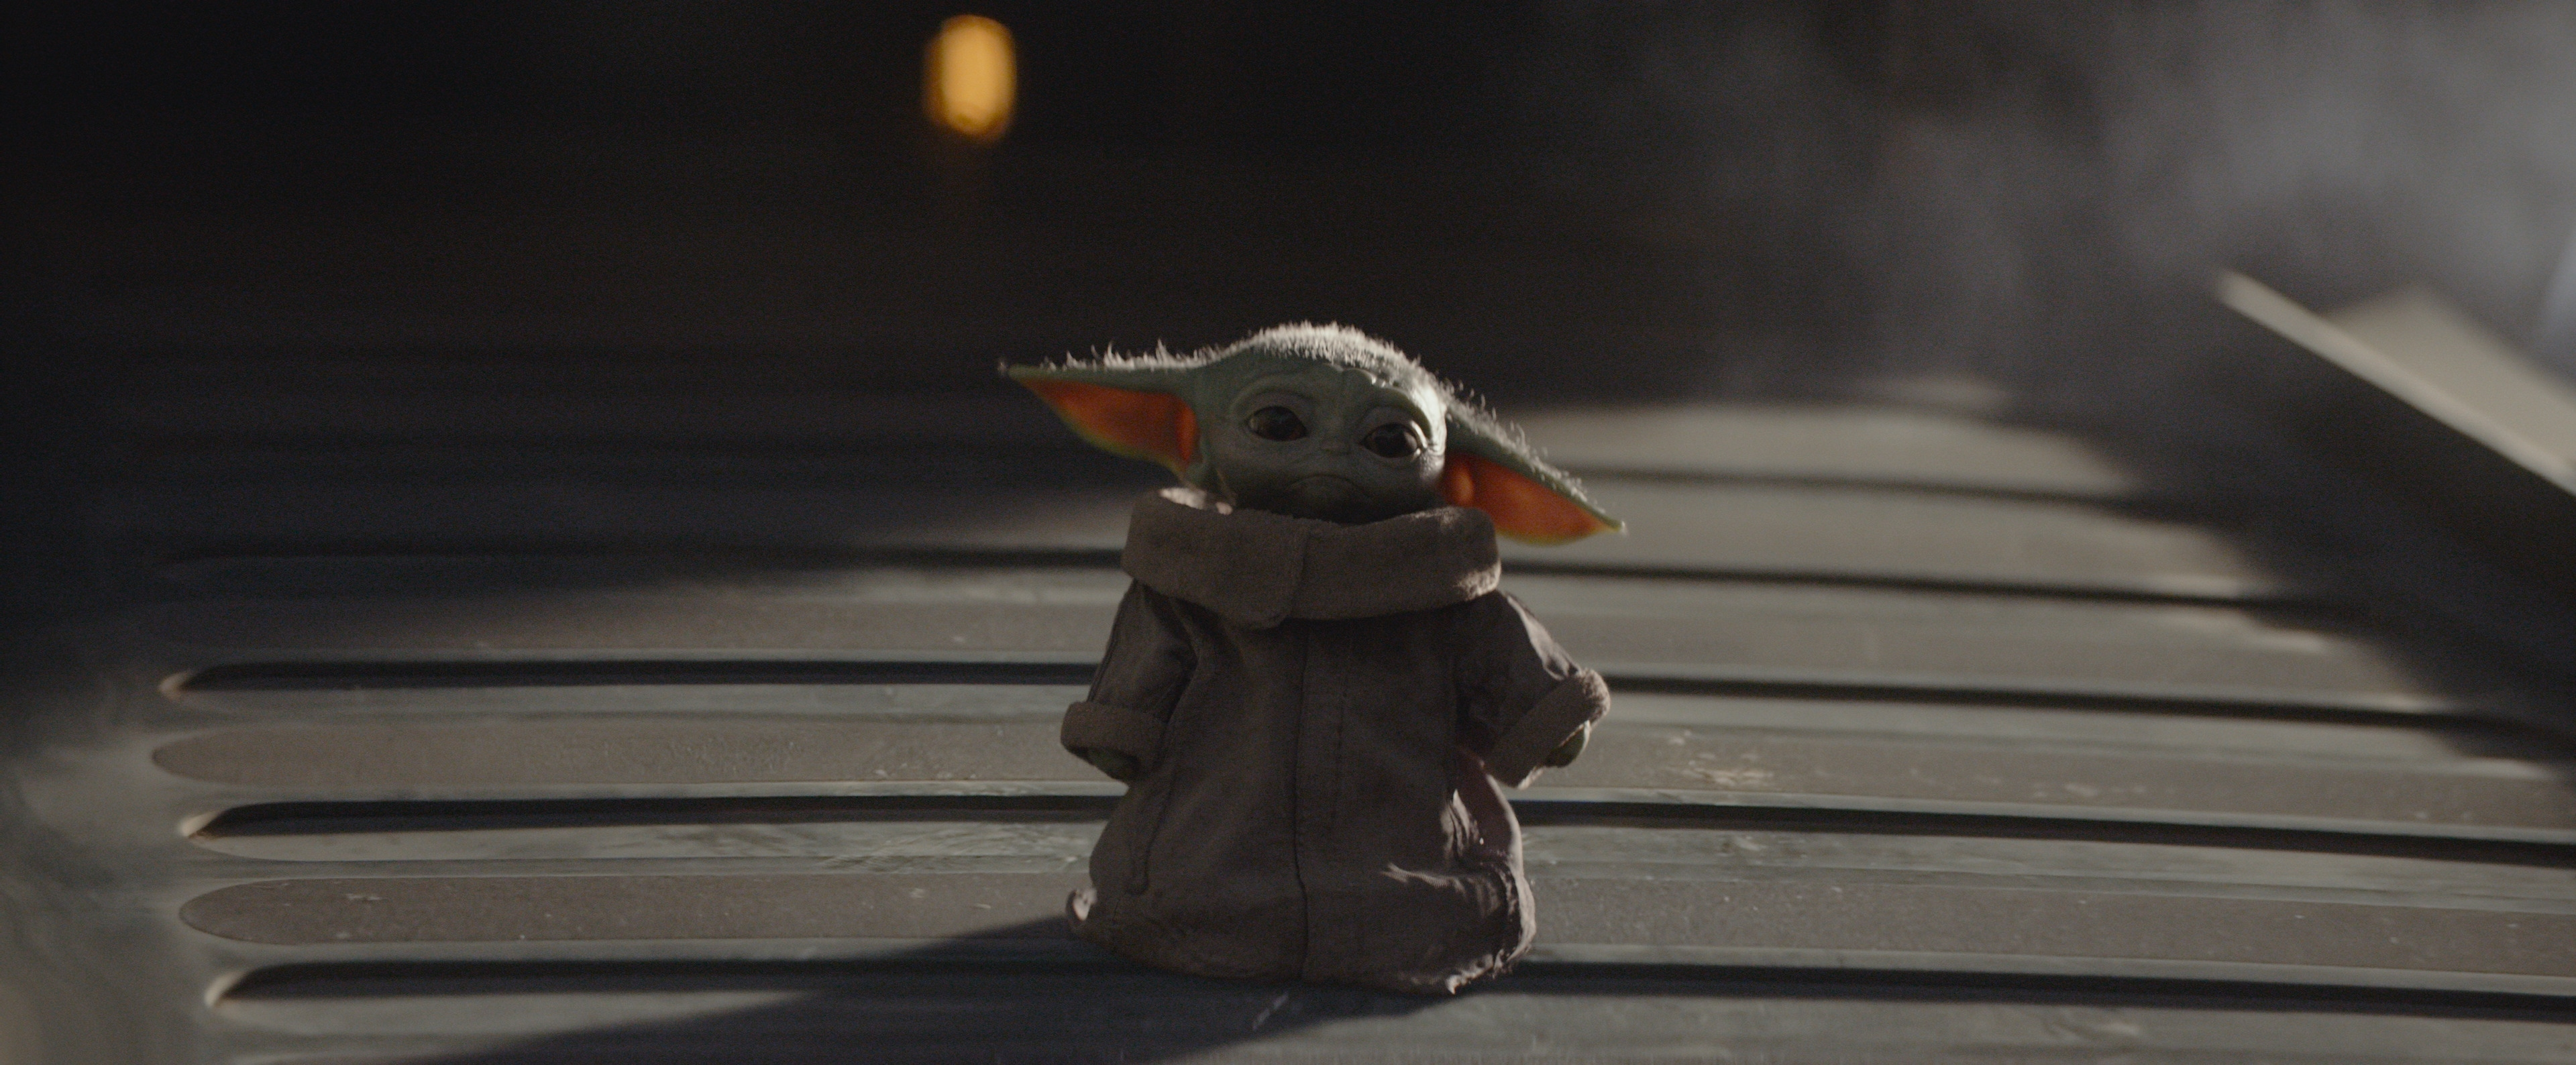 Baby Yoda The Child from The Mandalorian on Disney Plus